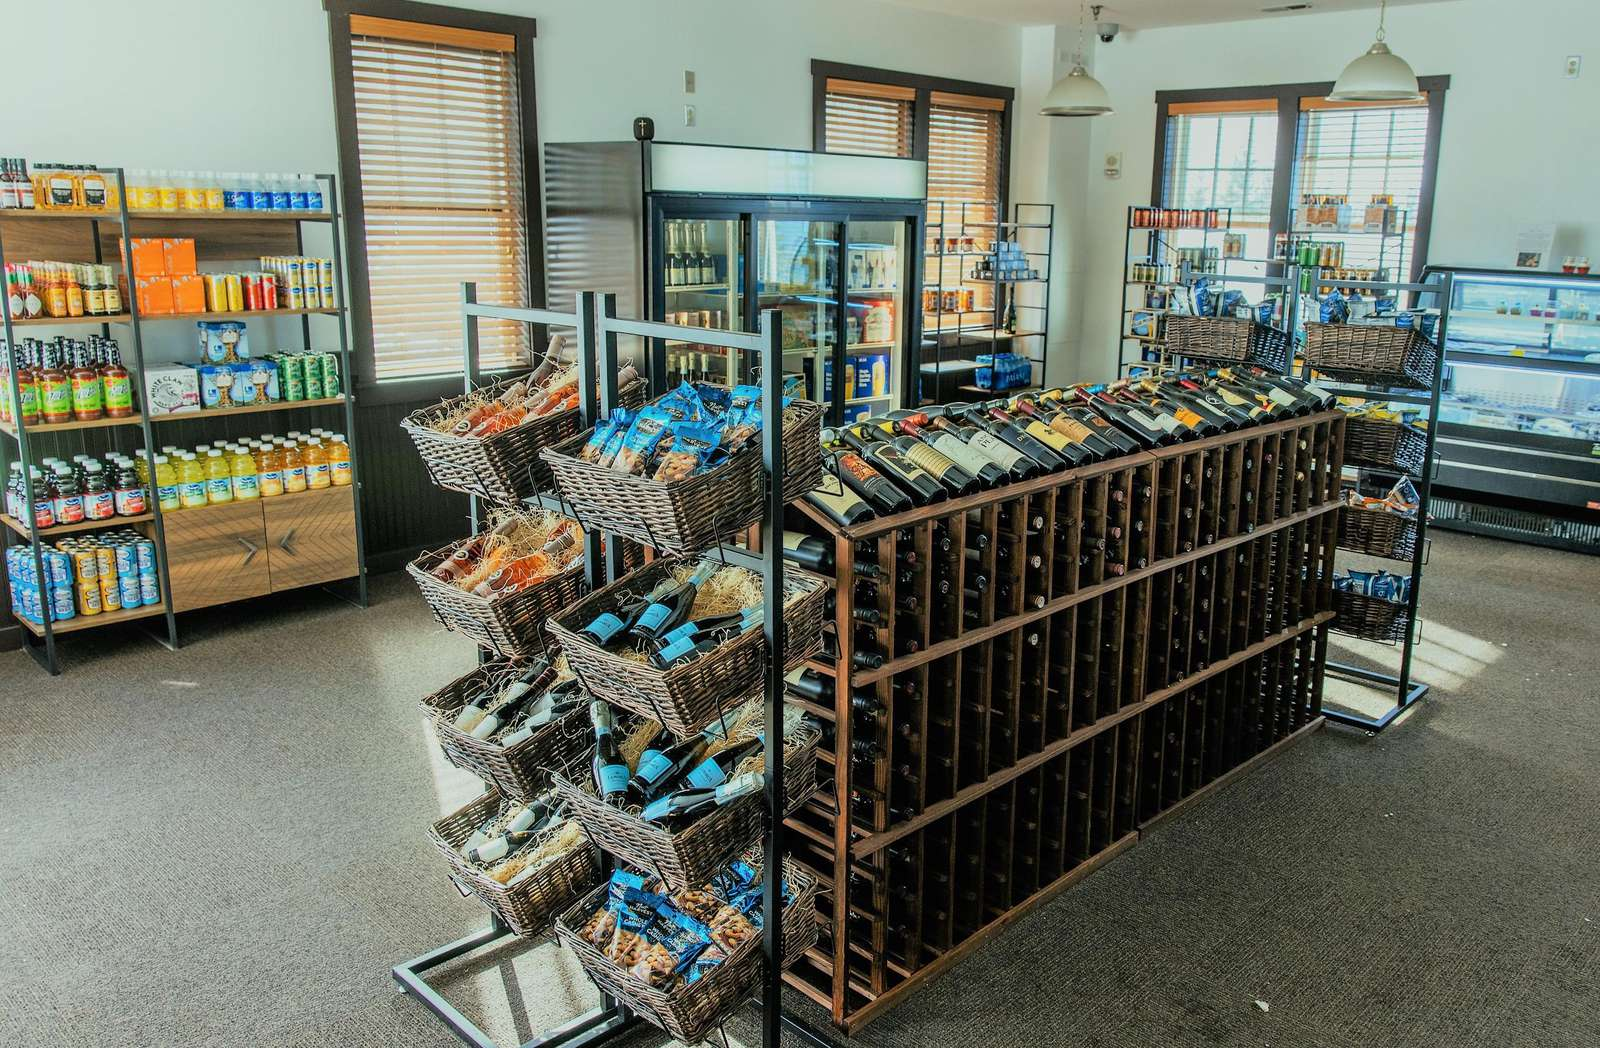 Wildcat Grocery - Snacks and Drinks readily available to appease your cravings and quench your thirst on the go, catering to your needs during your adventures at SnowShoe.